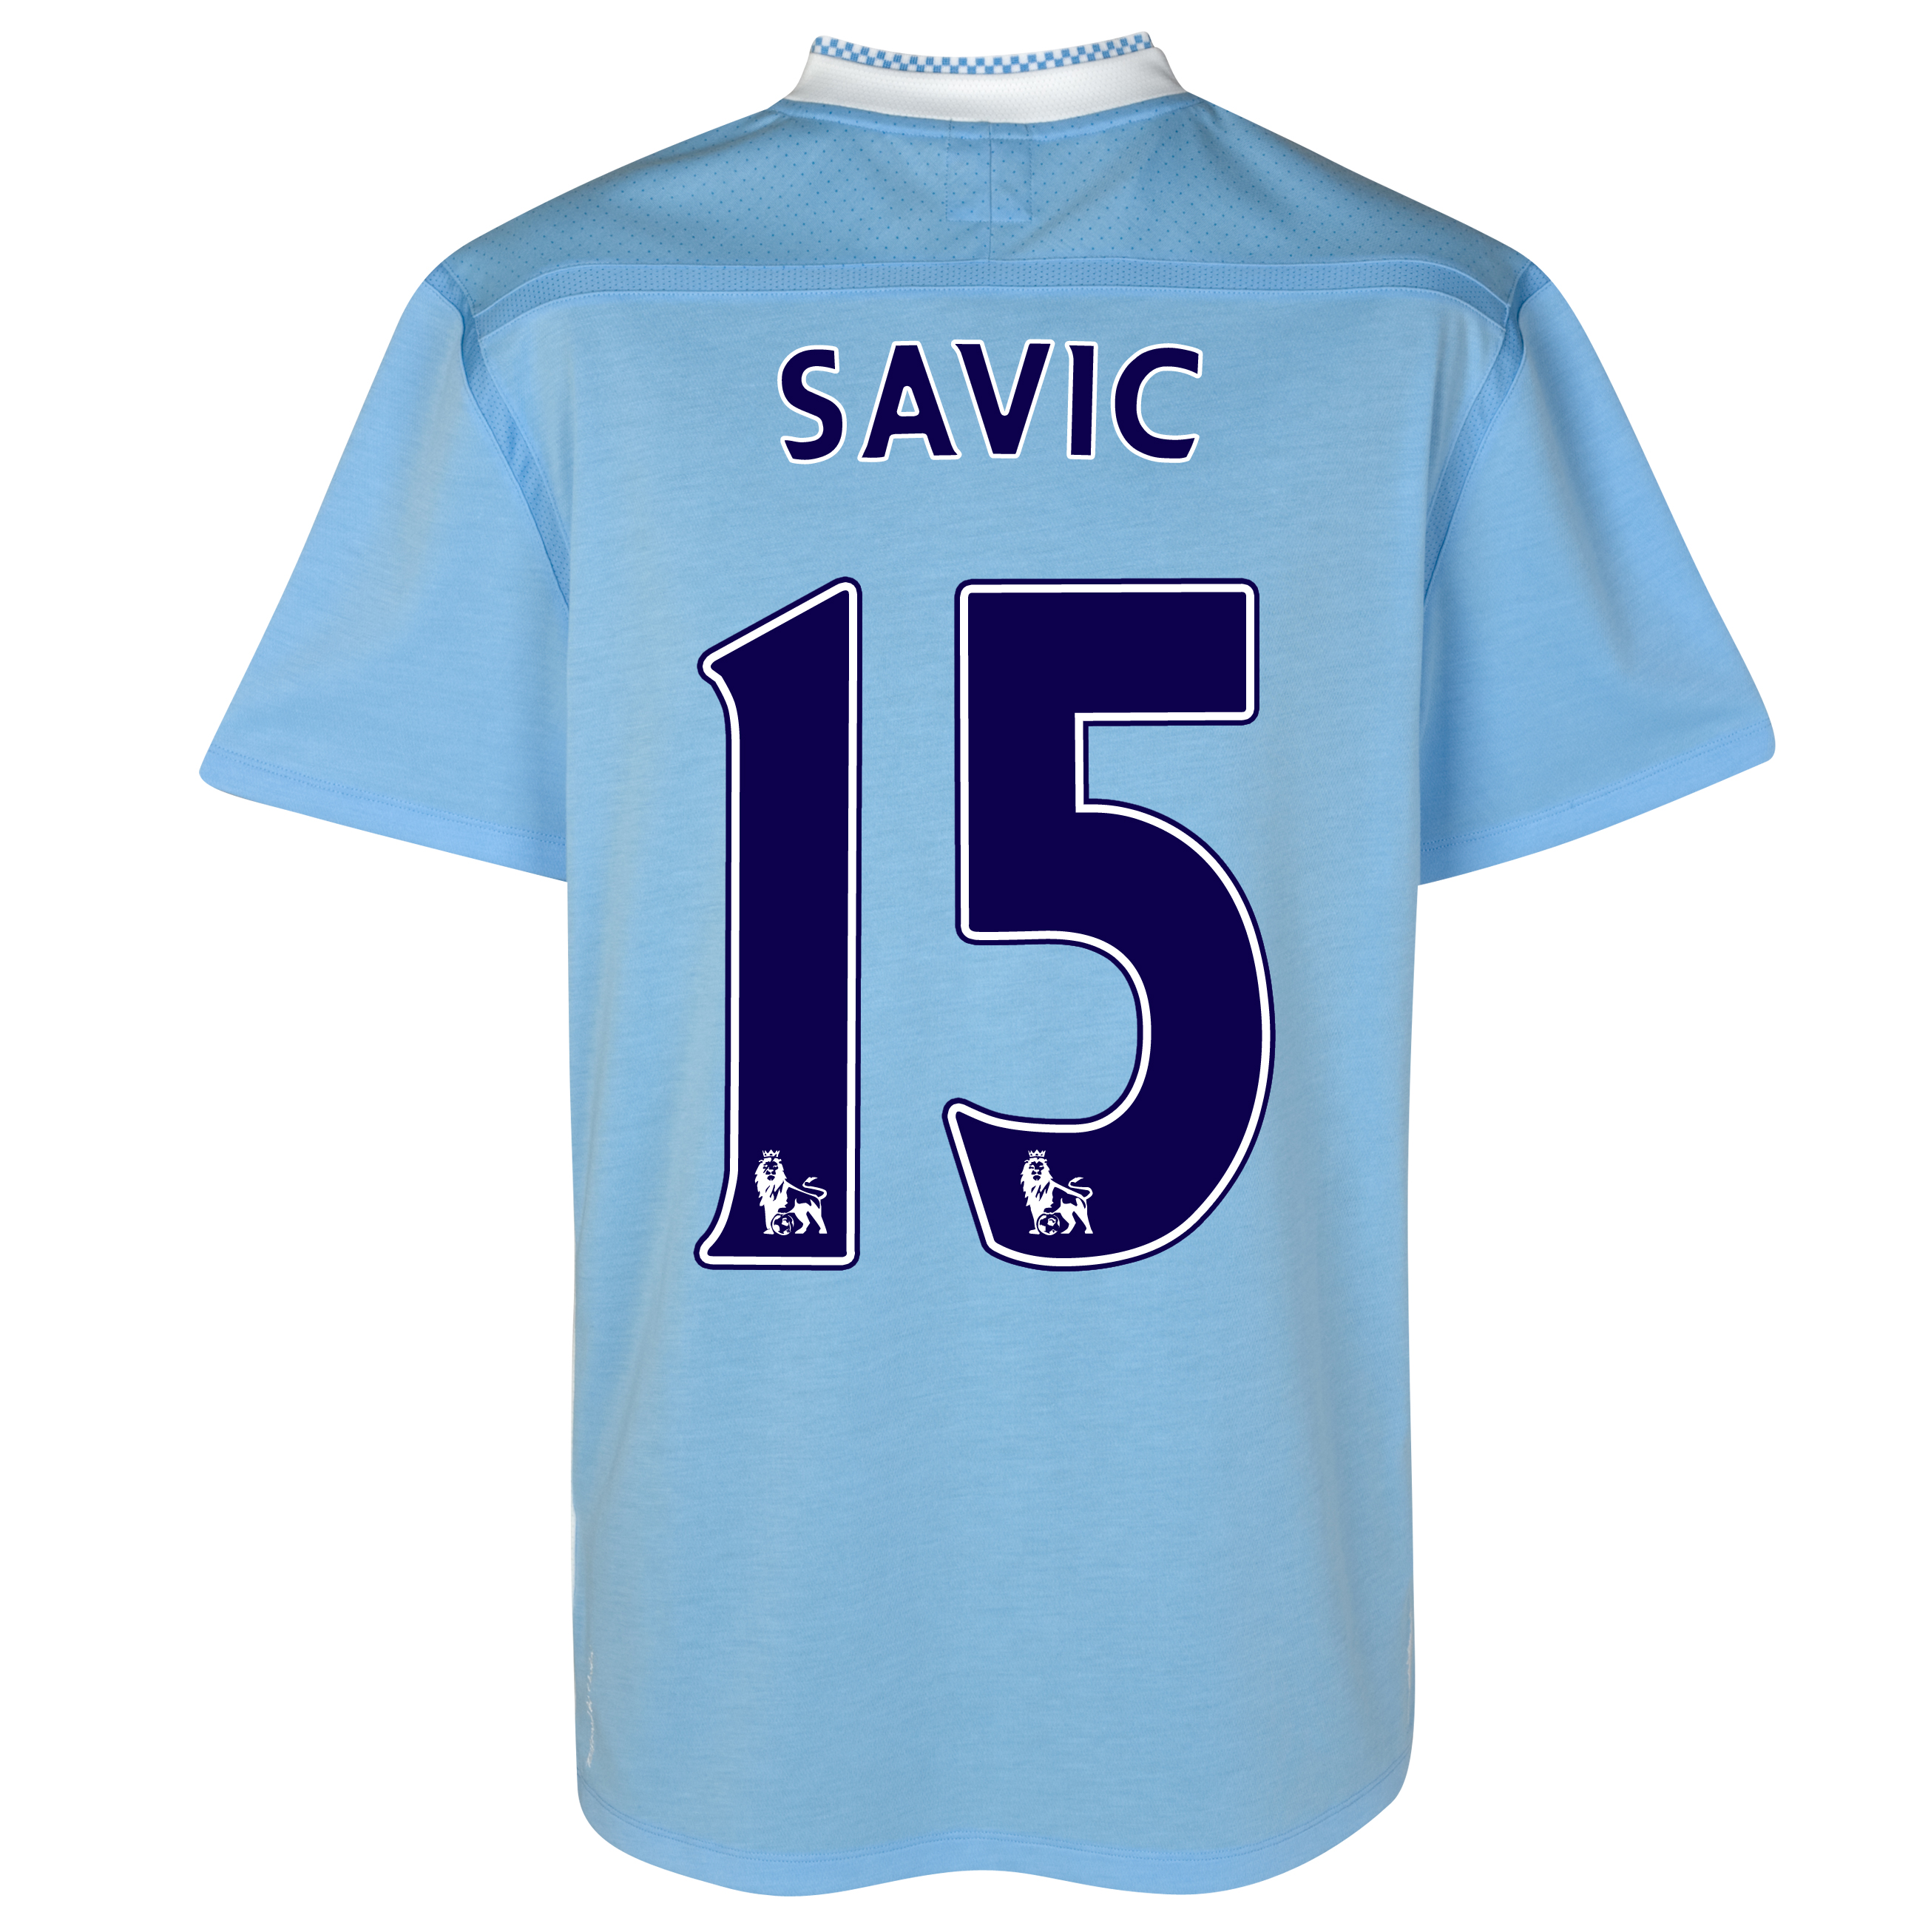 Manchester City Home Shirt 2011/12 with Savic 15 printing